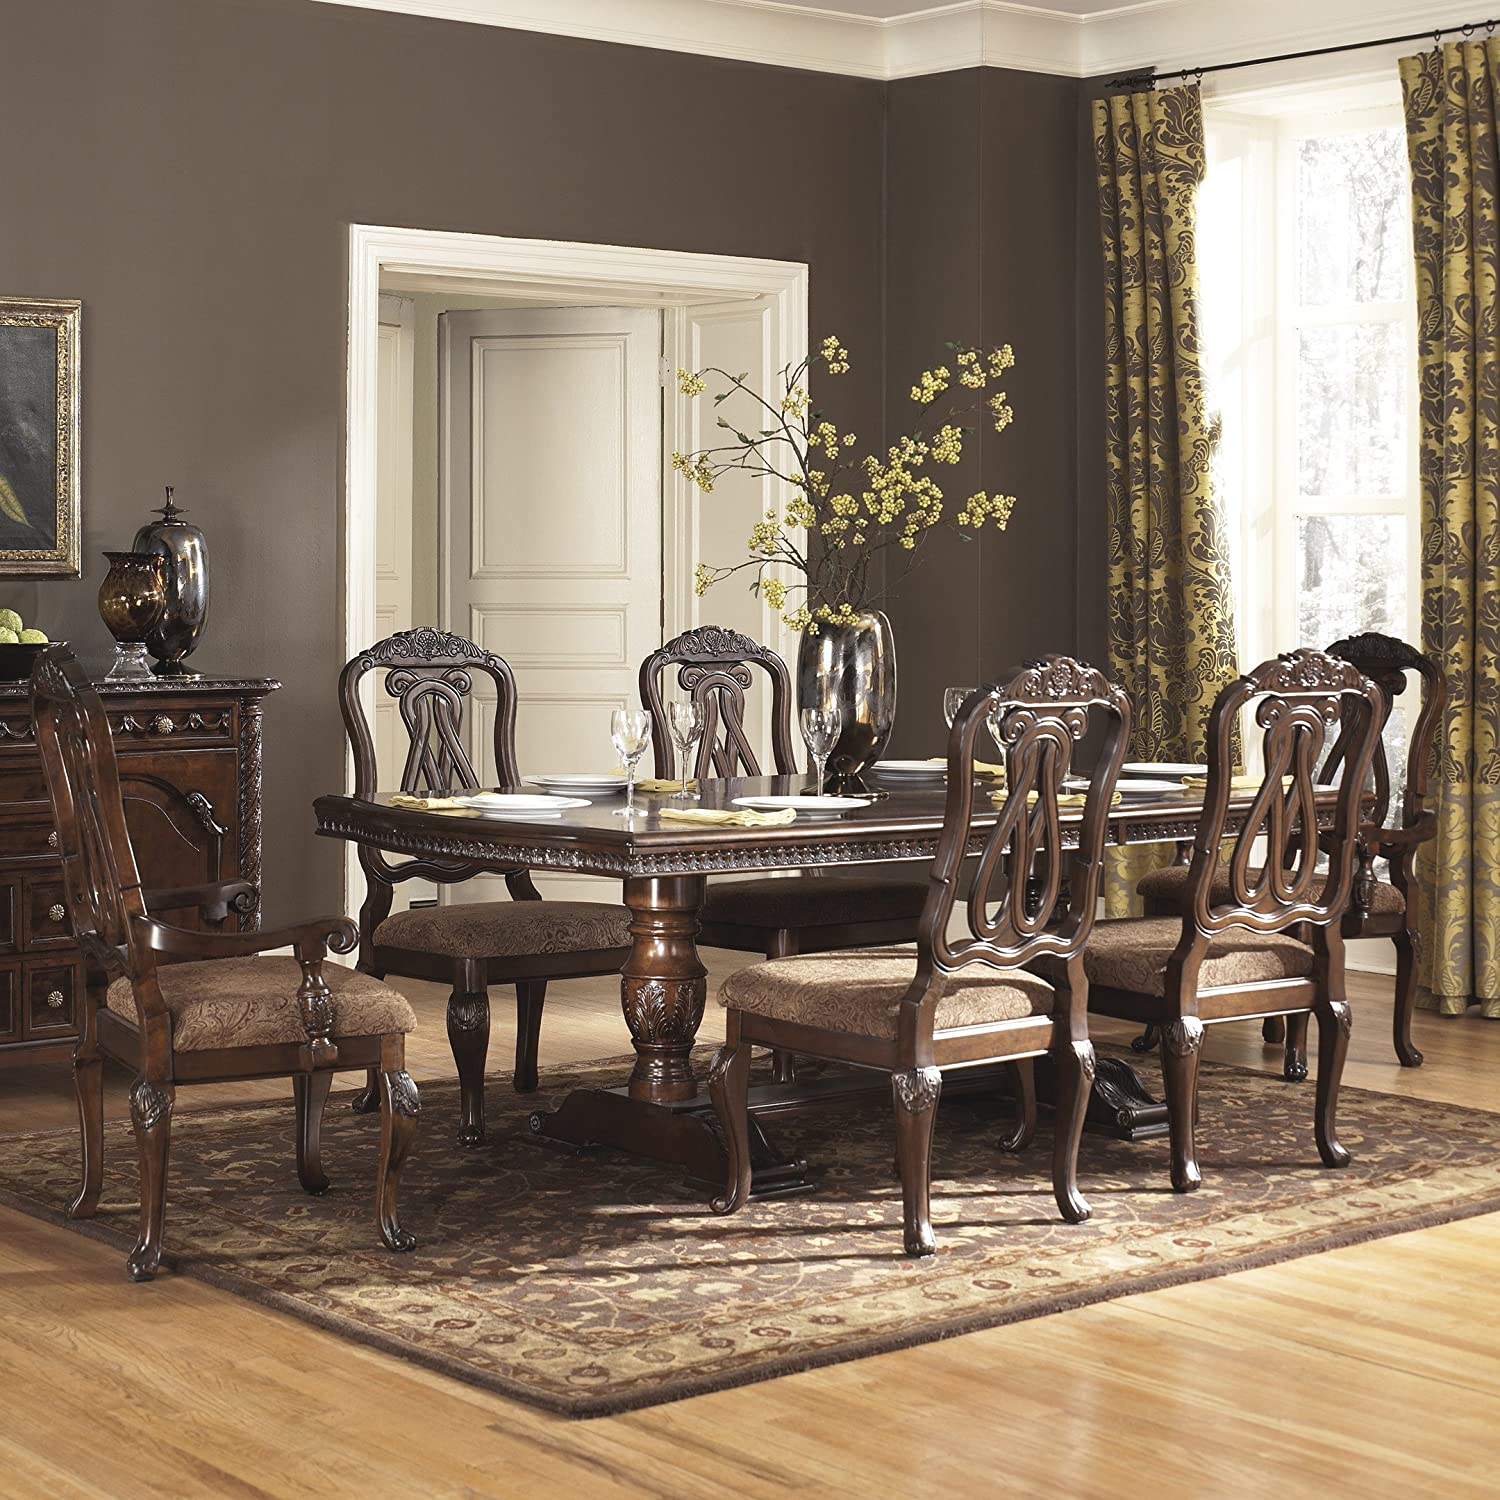 Ashley Furniture Kitchen Sets Amazoncom Ashley North Shore 7 Piece Wooden Dining Table Set